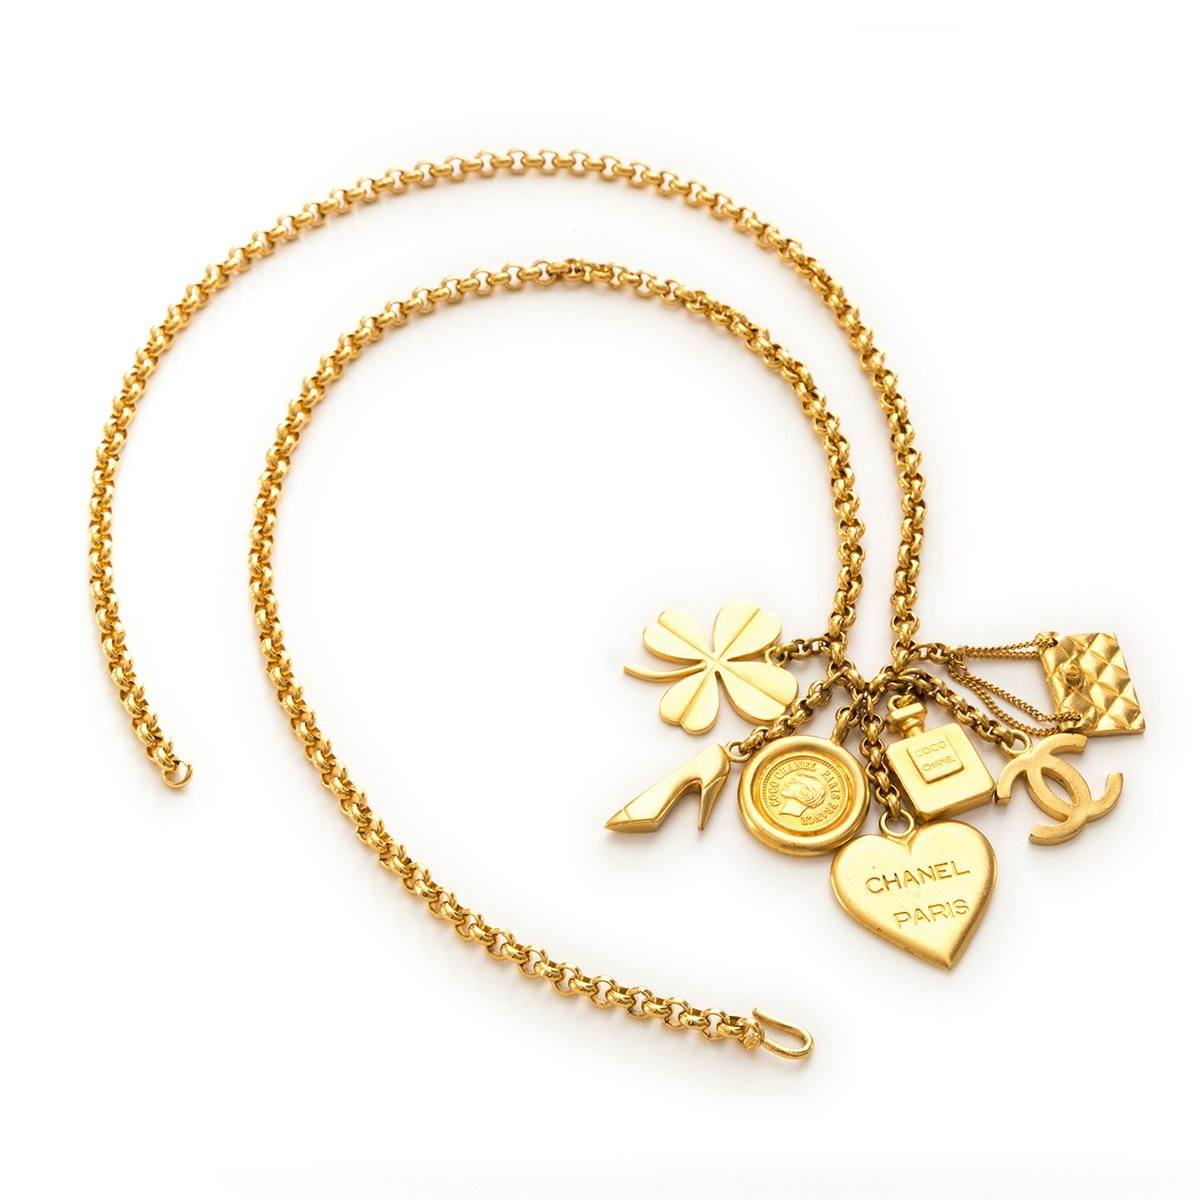 Chanel Gold Metal Charm Necklace